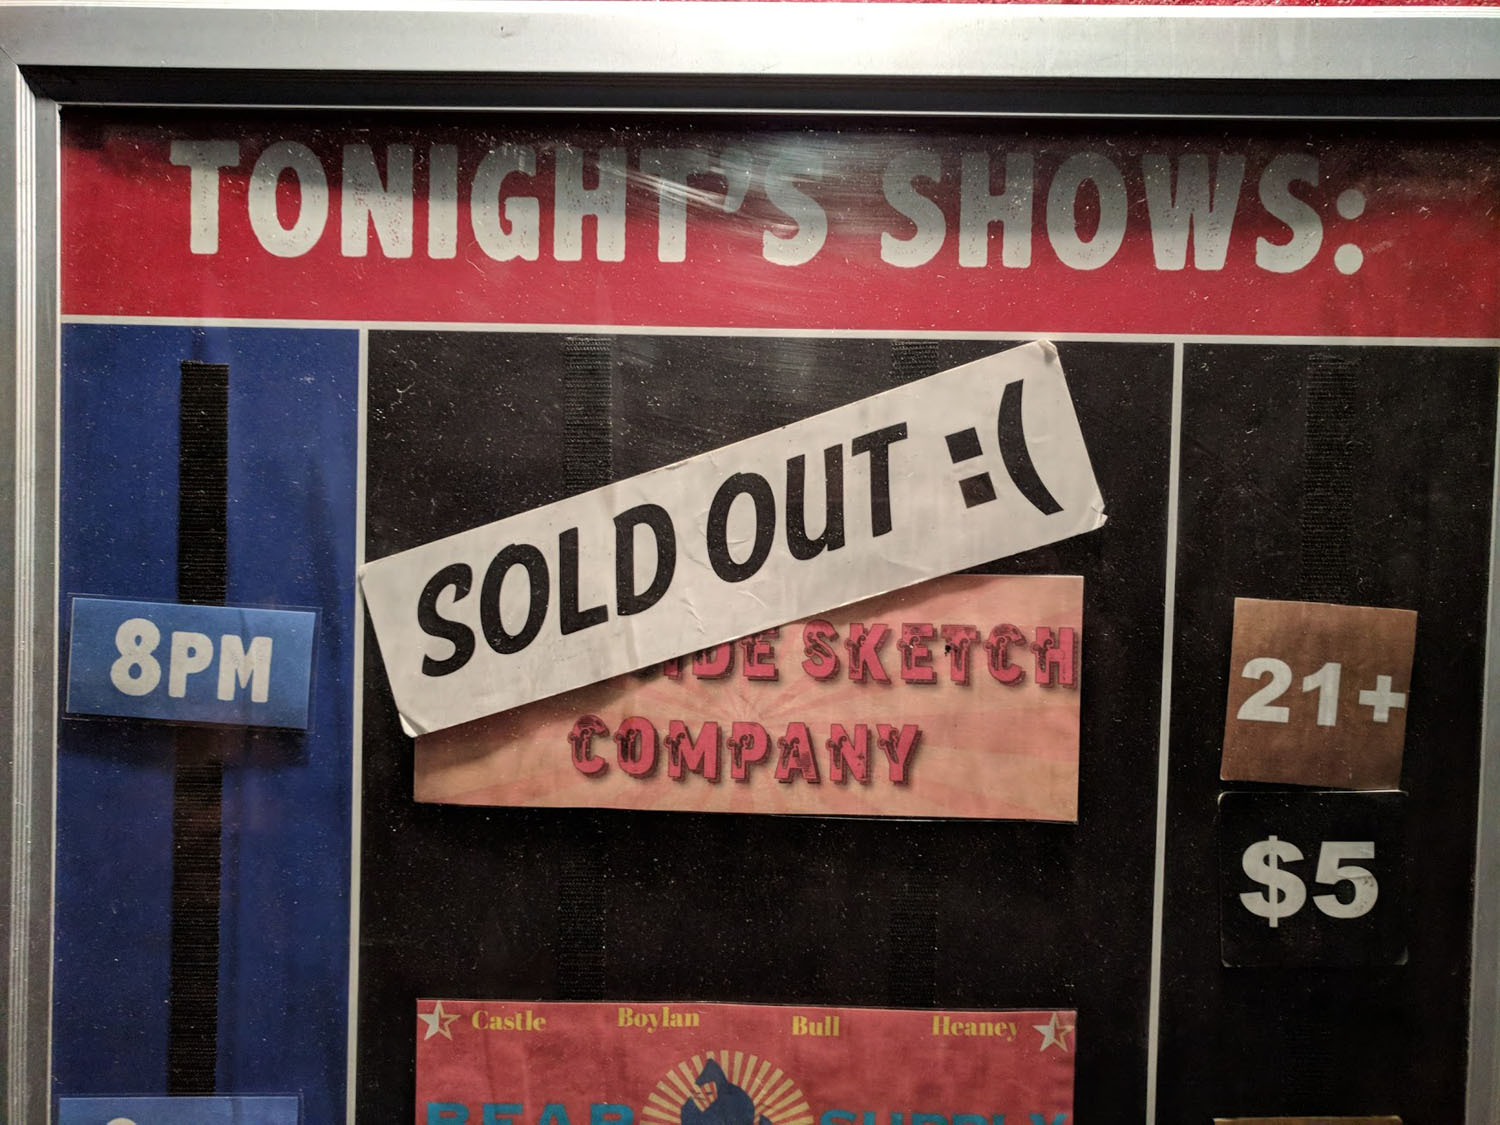 The Westside Comedy Theater's Marquee and our sold-out show!